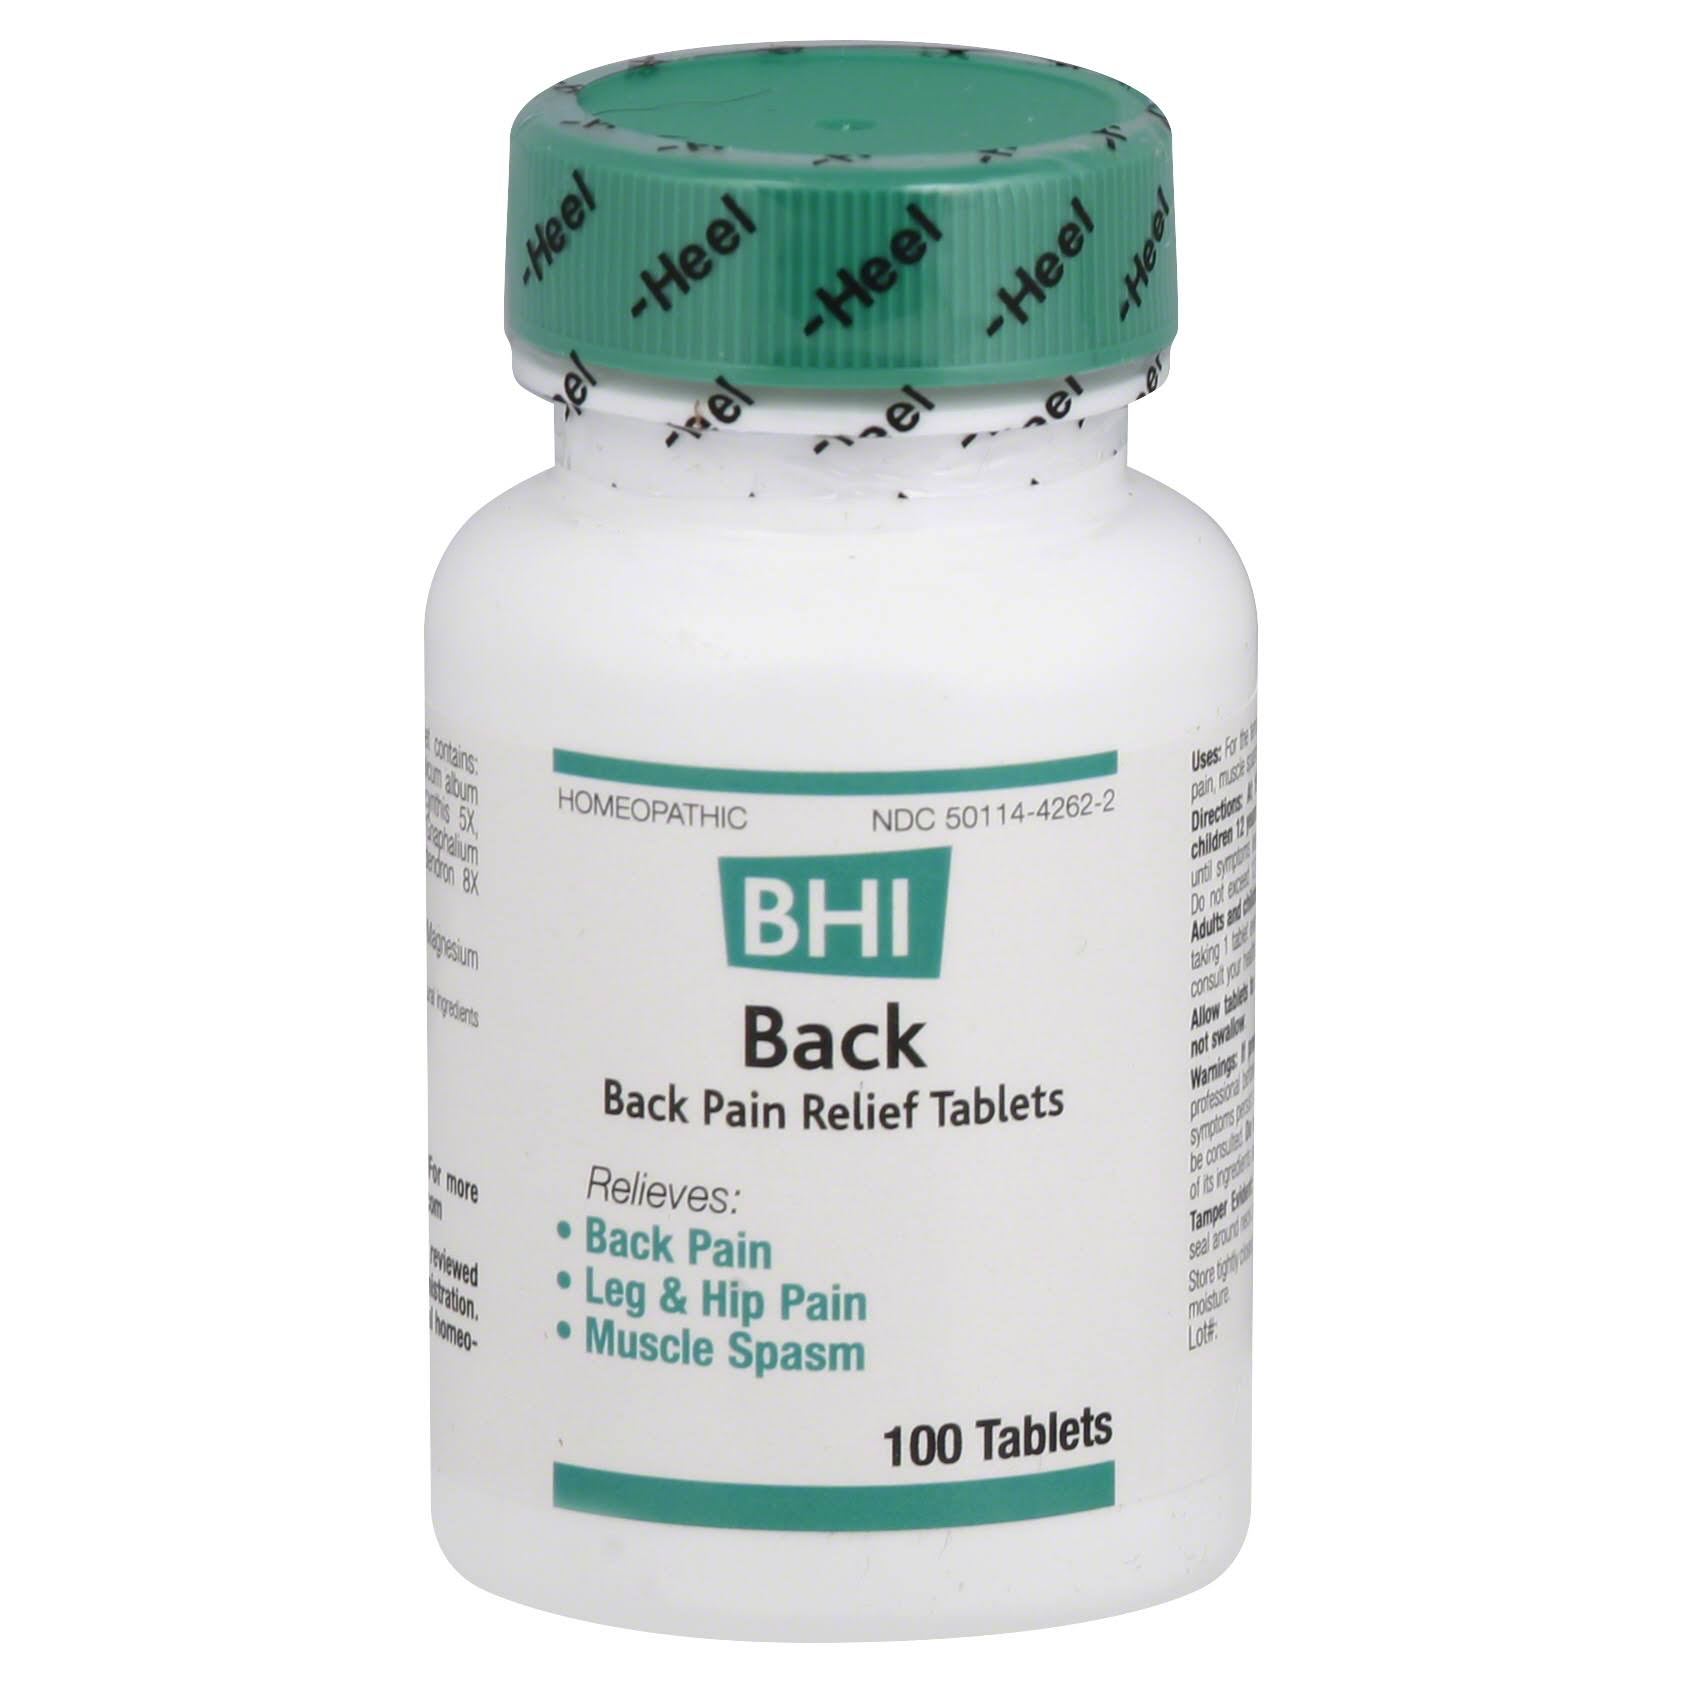 BHI Back Pain Relief Tablets